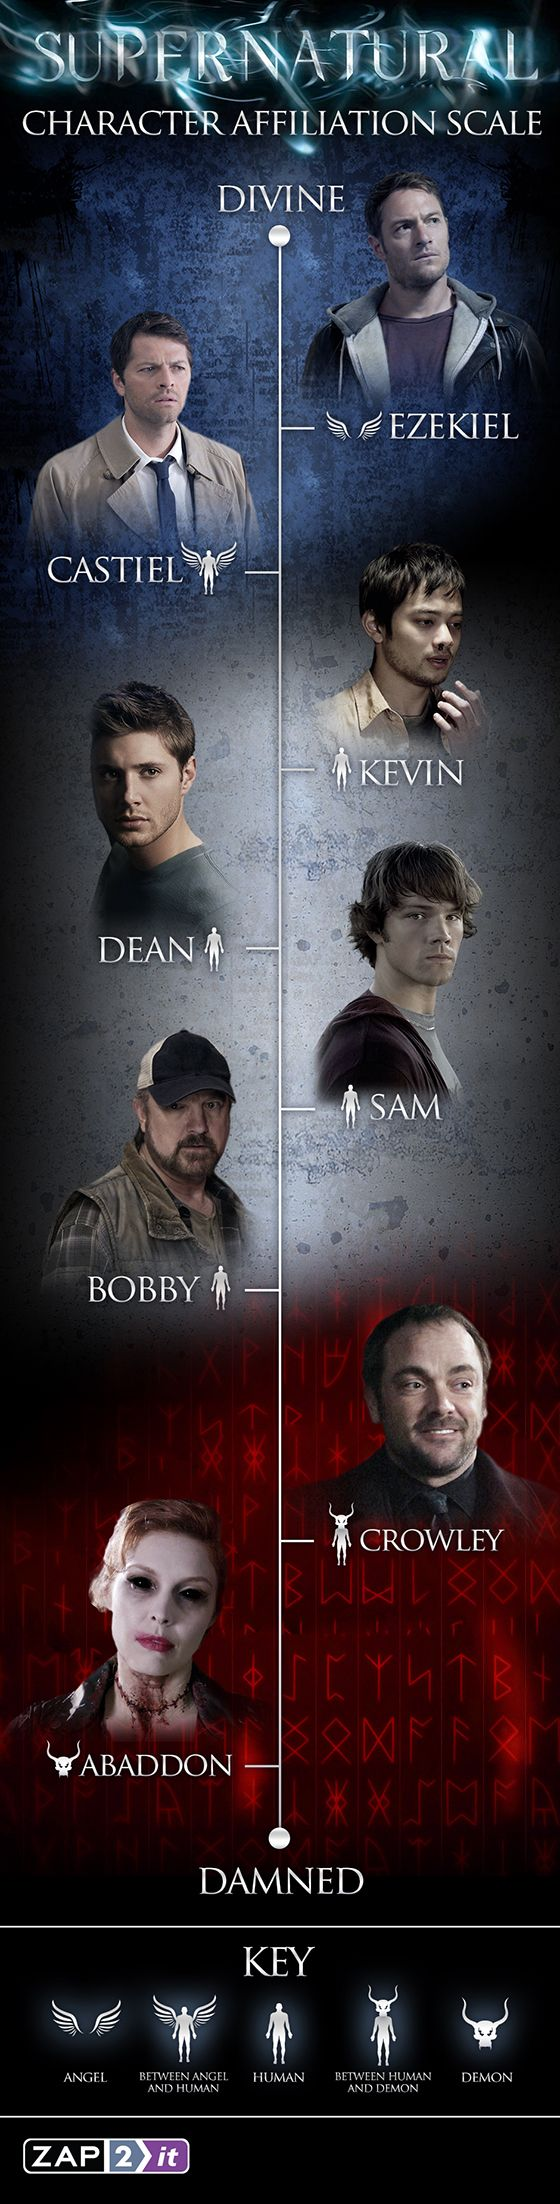 "The stakes are higher than ever on ""Supernatural,"" so where do all the fan-favorite characters stand on a scale from the divine to the damned? Check out Zap2it's handy character affiliation infographic here ..."